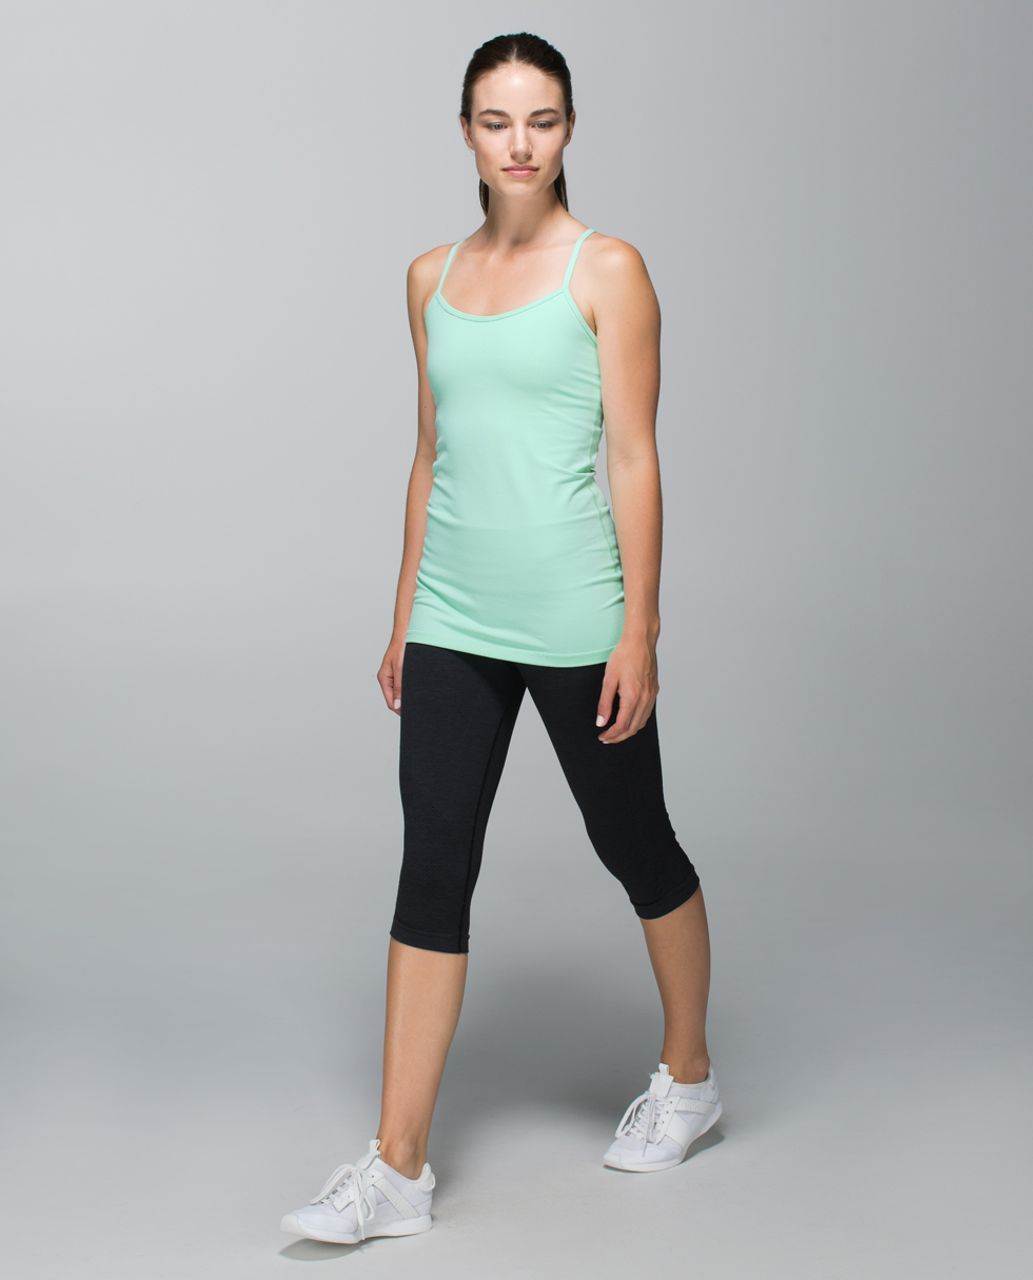 Lululemon Power Y Tank *Luon - Toothpaste